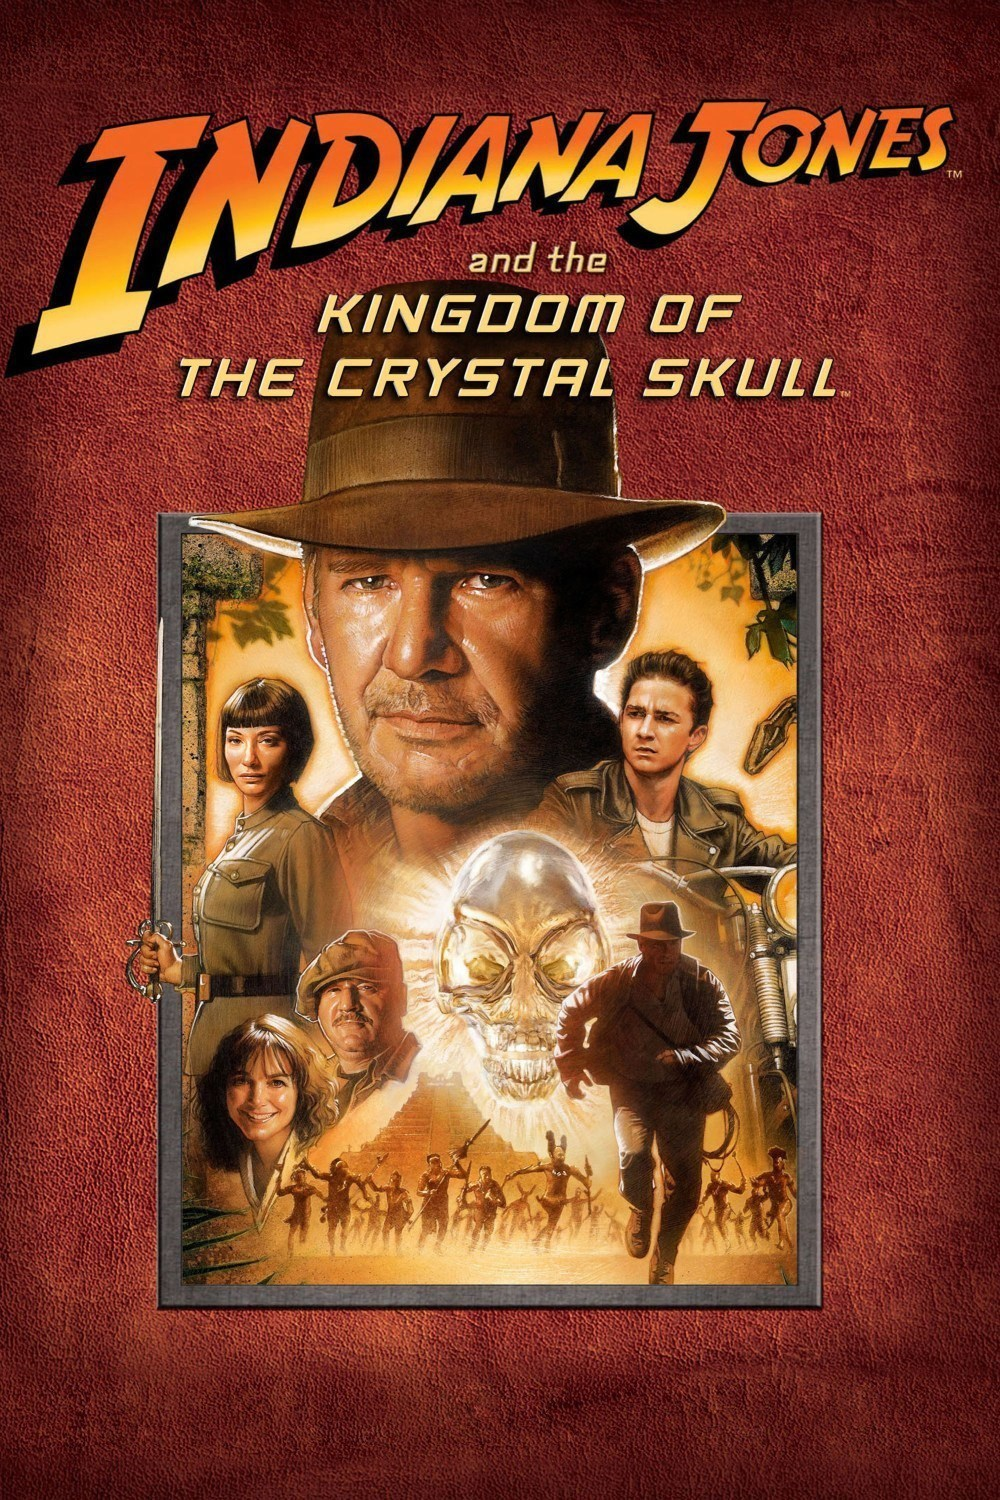 Indiana Jones and the Kingdom of the Crystal Skull (2008) ταινιες online seires oipeirates greek subs